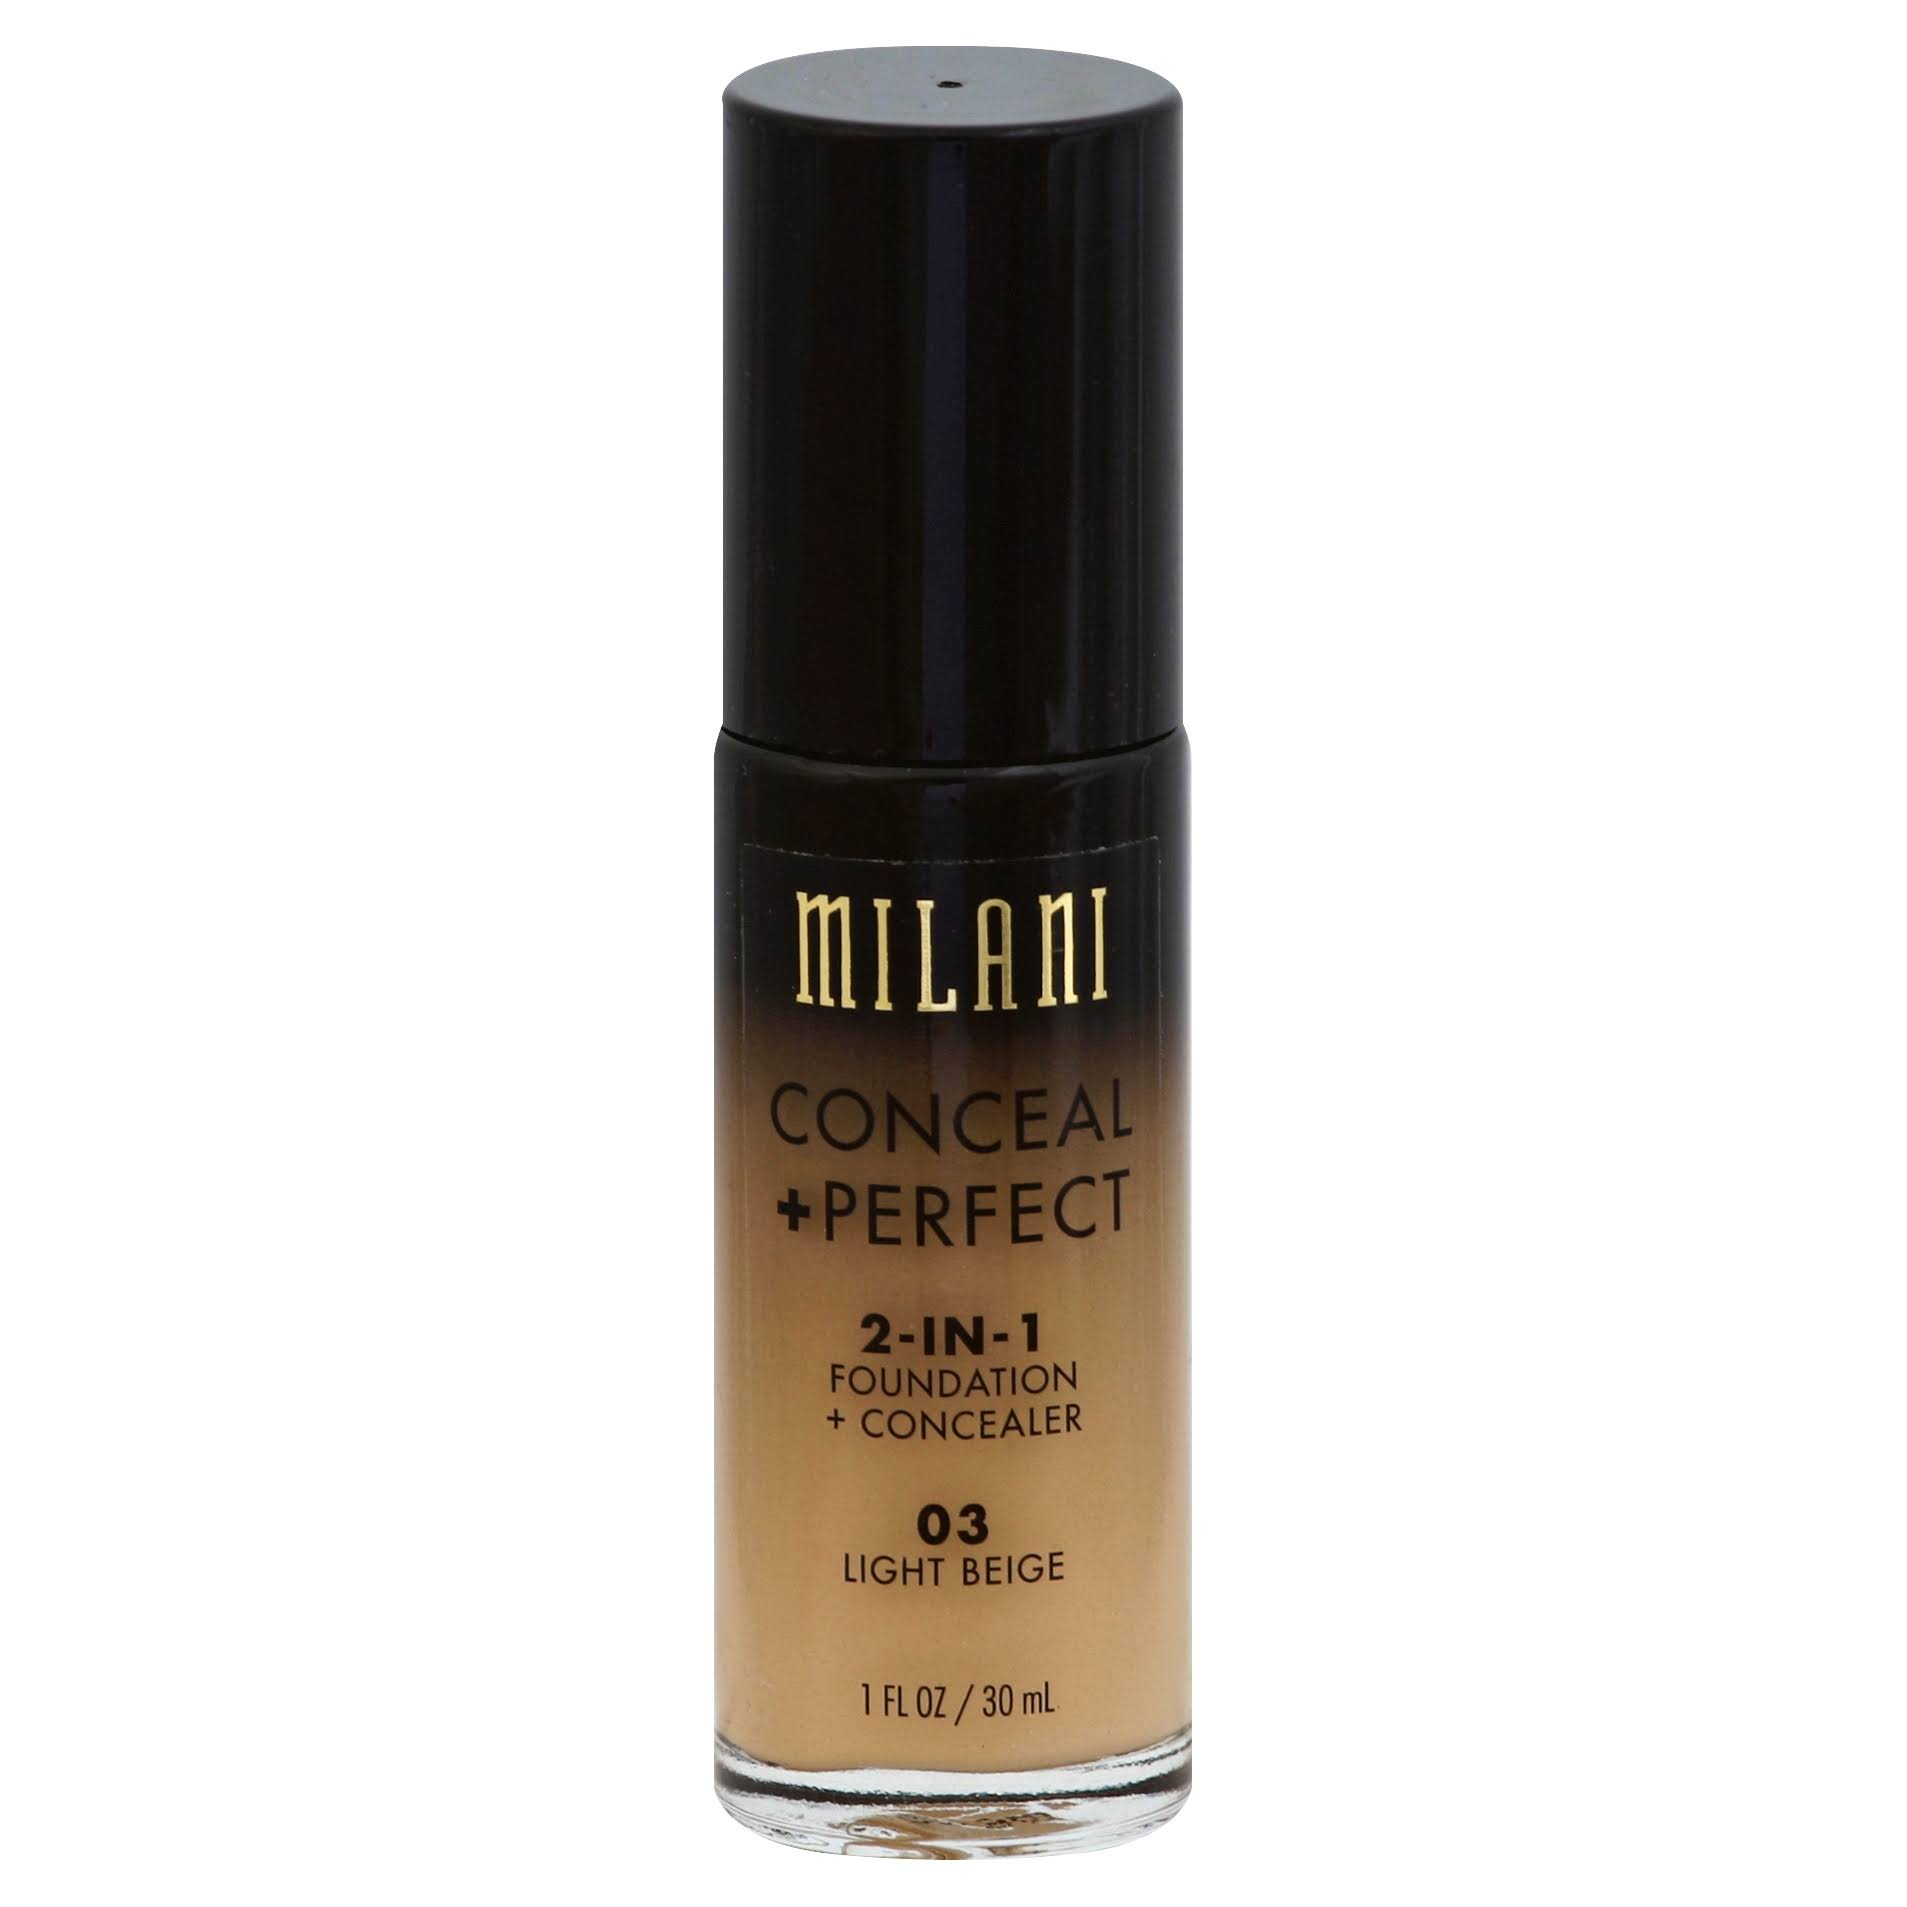 Milani Conceal + Perfect 2-In-1 Foundation + Concealer - 03 Light Beige, 30ml